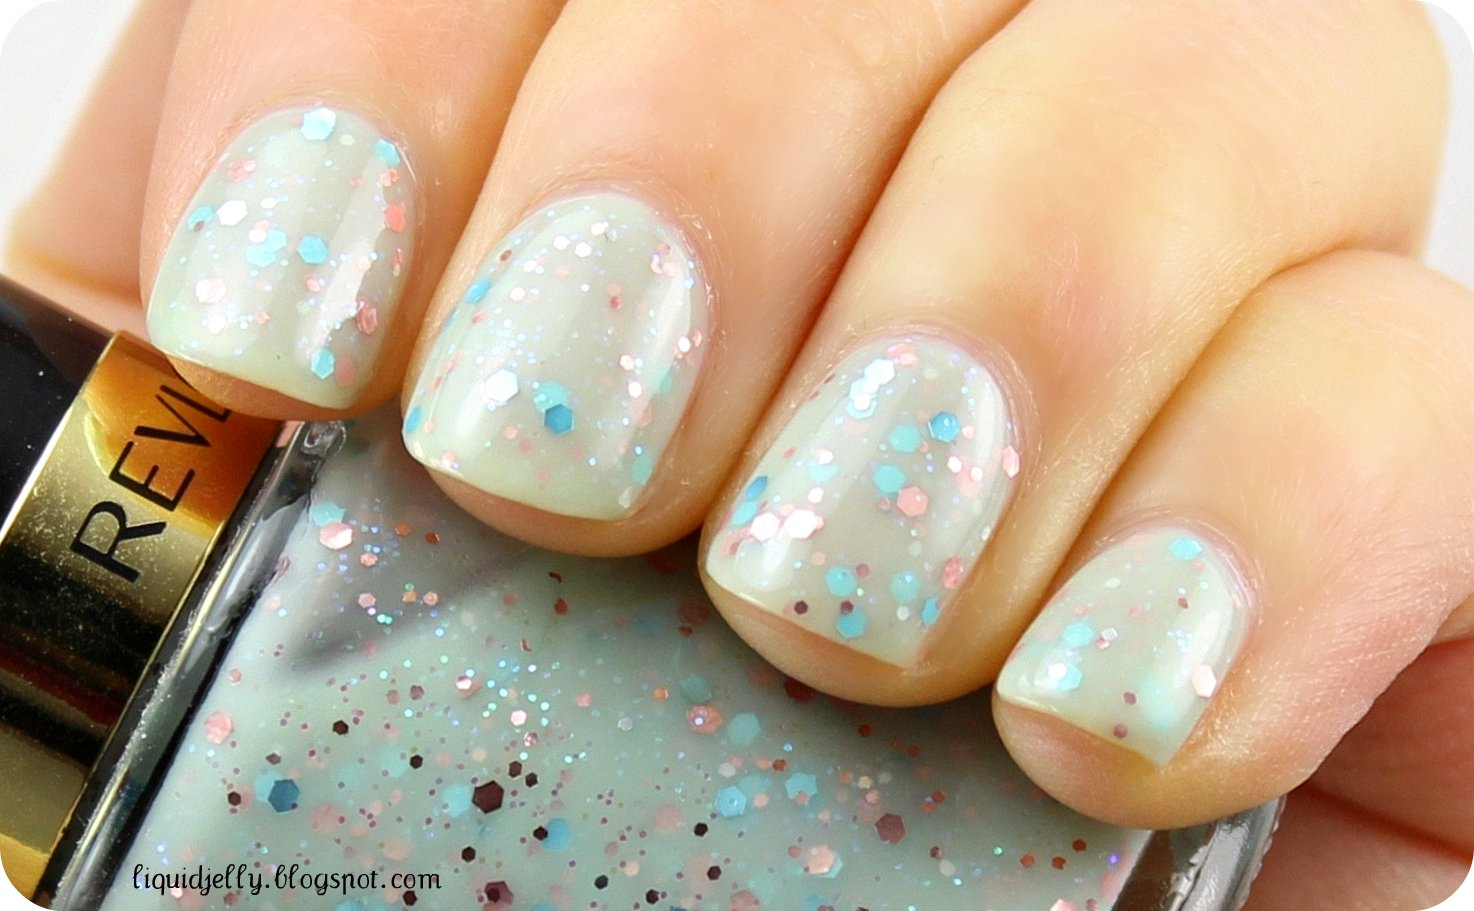 Liquid Jelly: Revlon Whimsical